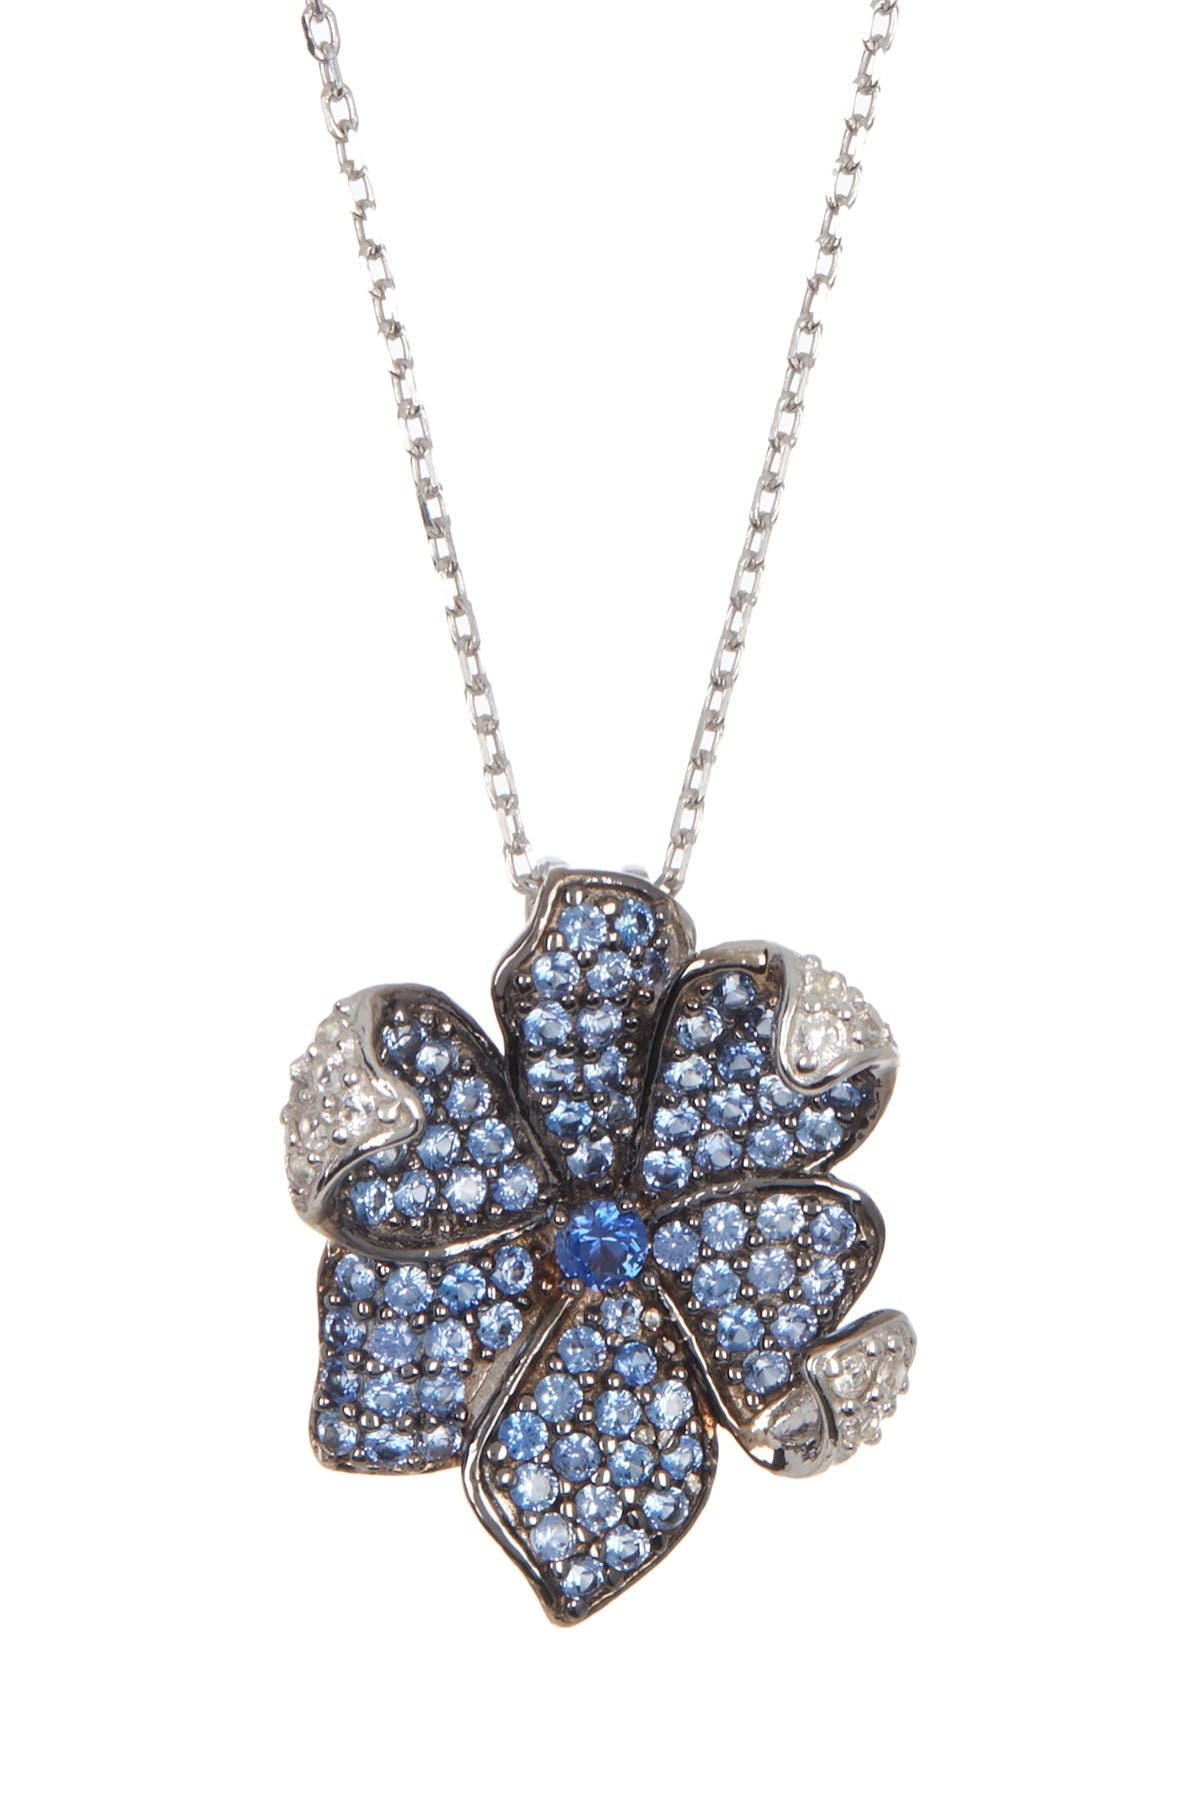 Image of Suzy Levian Sterling Silver Sapphire Flower Pendant Necklace